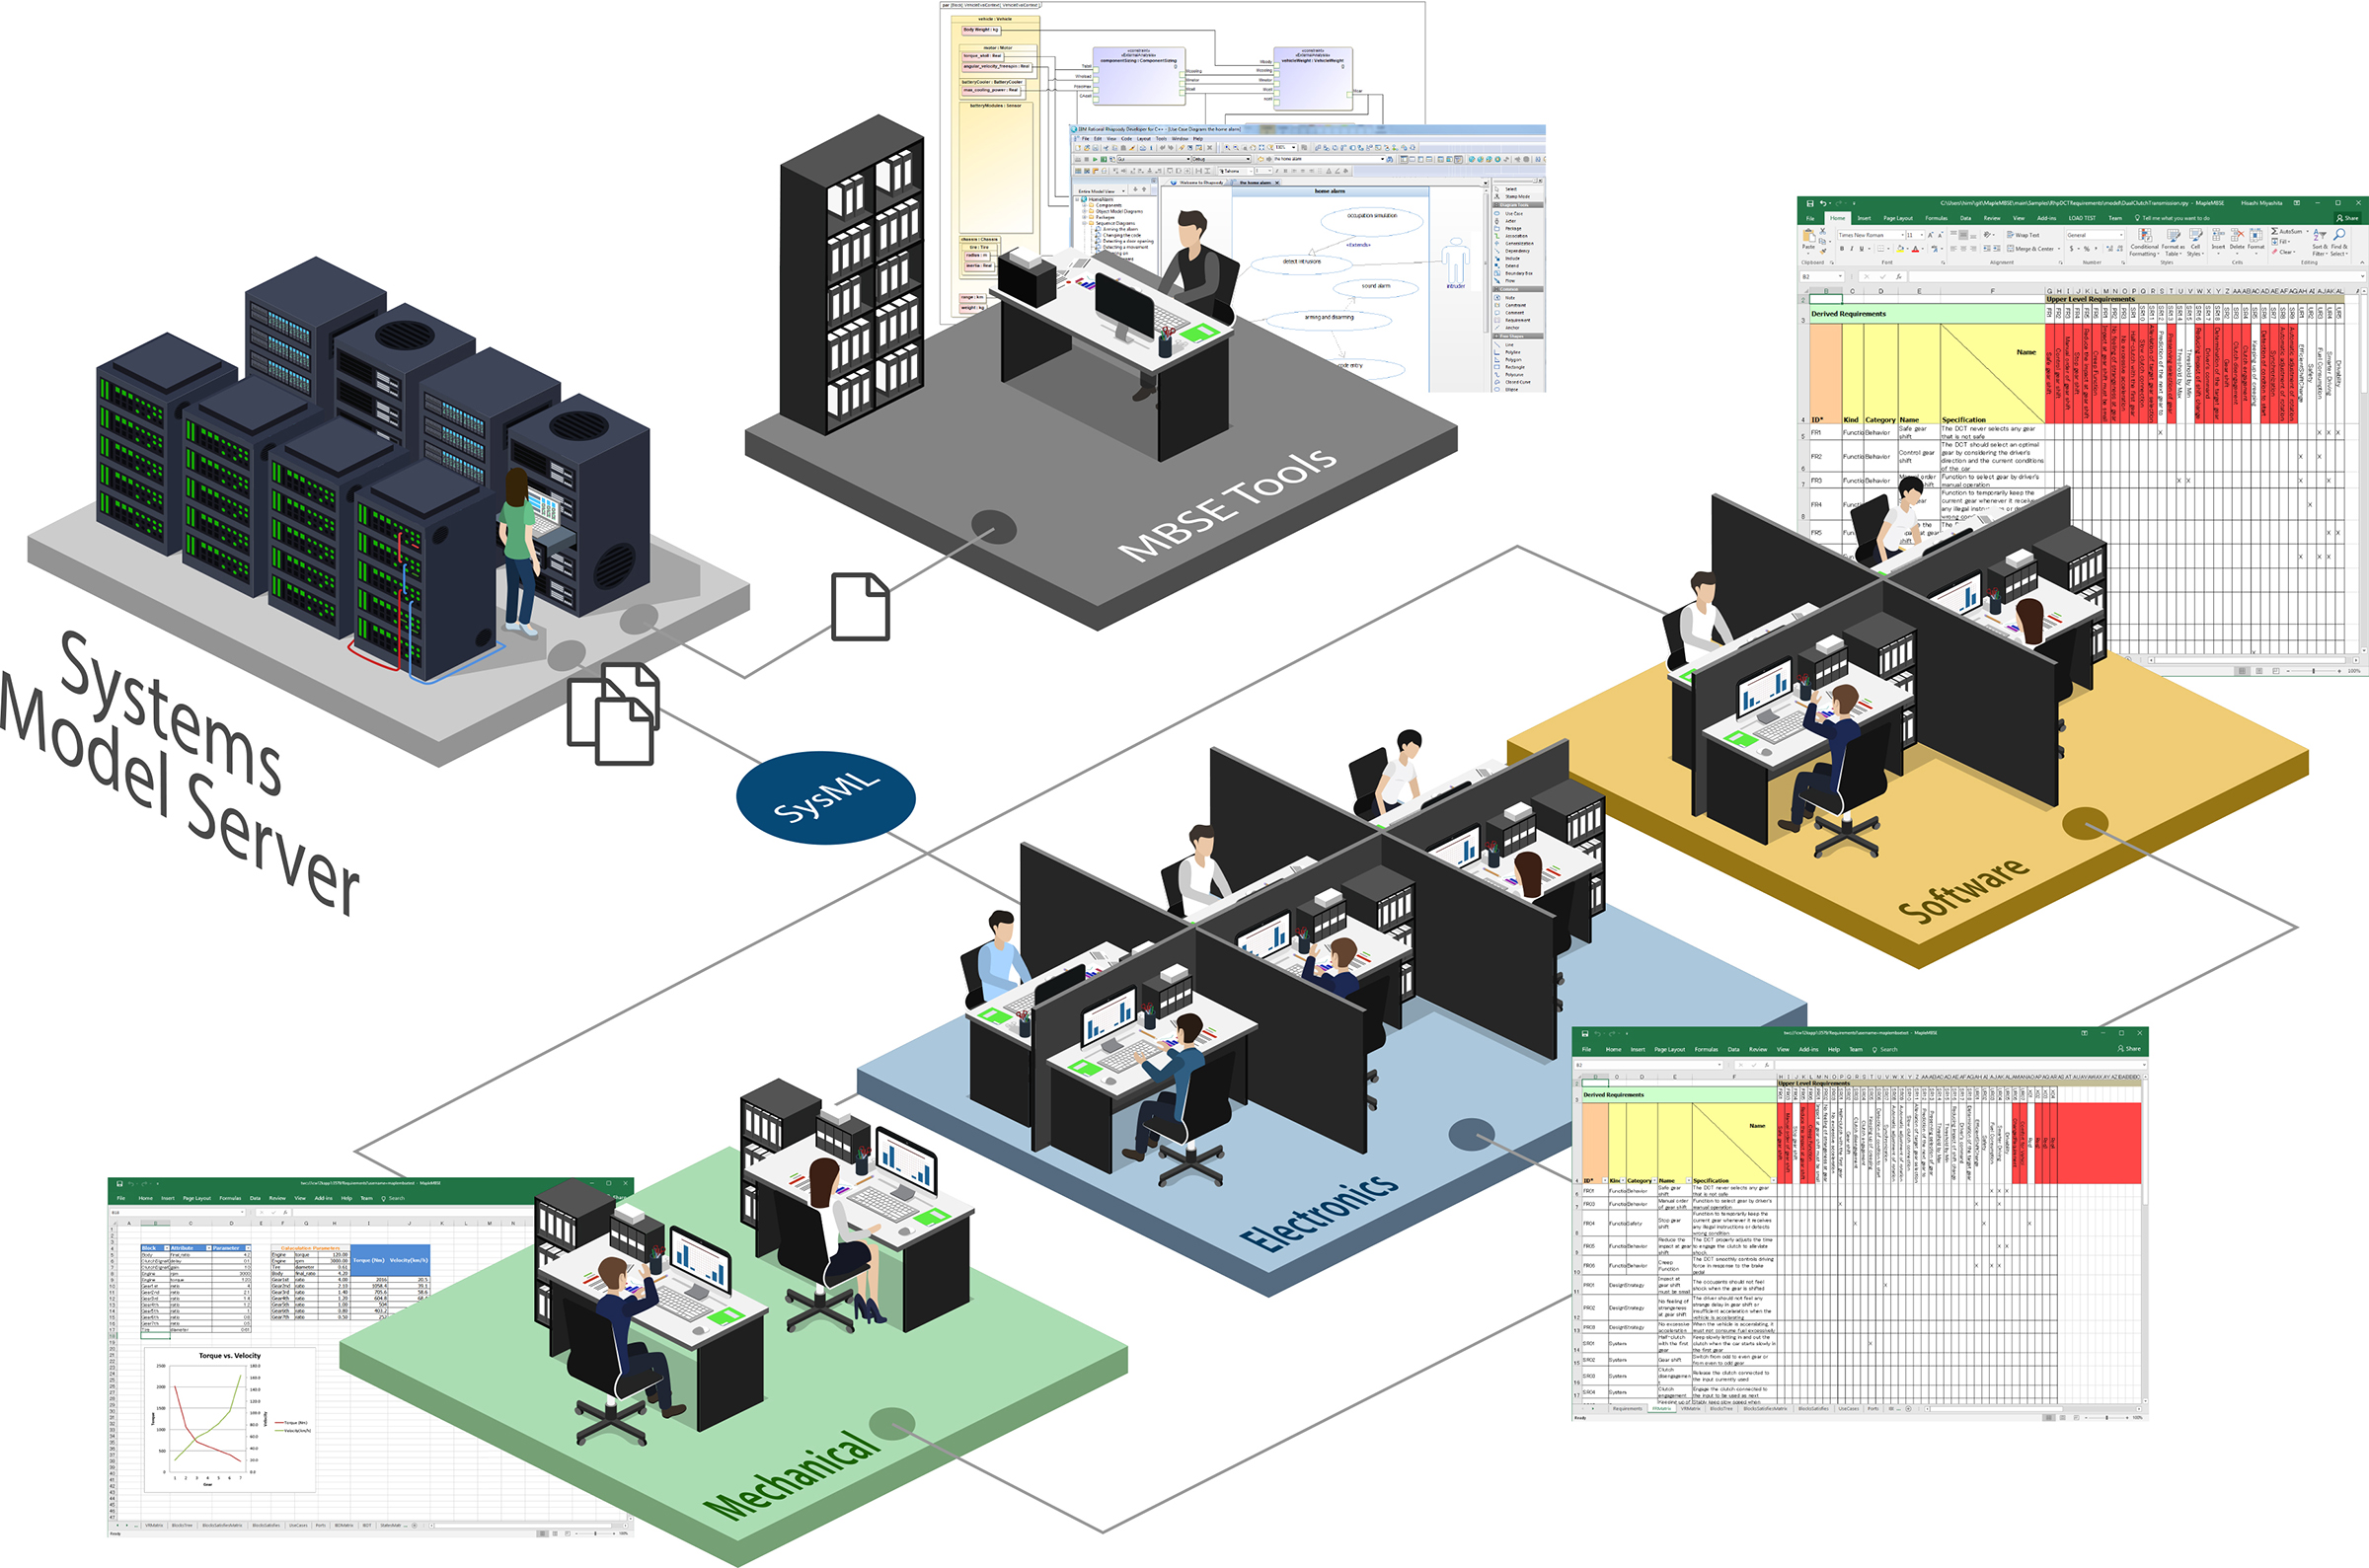 Software Improves Workflow of Systems Engineering Process